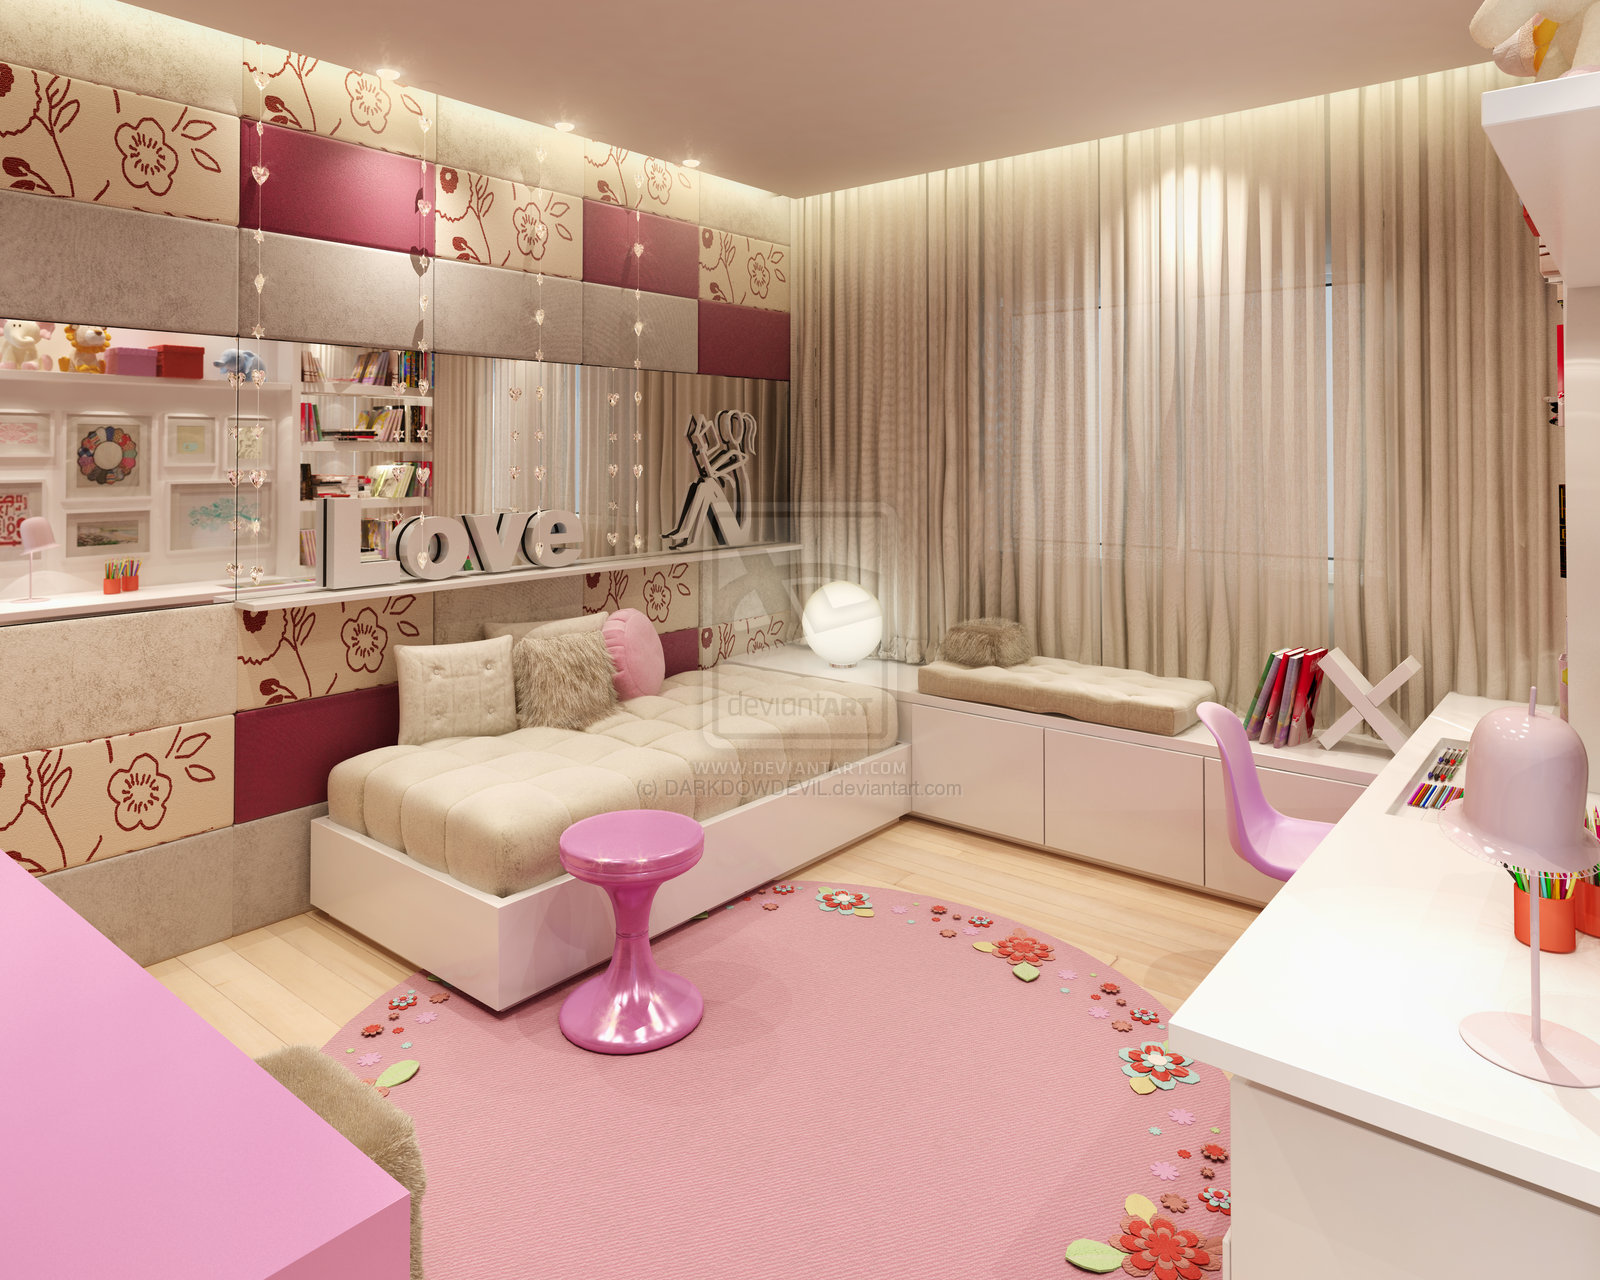 Girly bedroom design ideas azee for Cute bedroom ideas